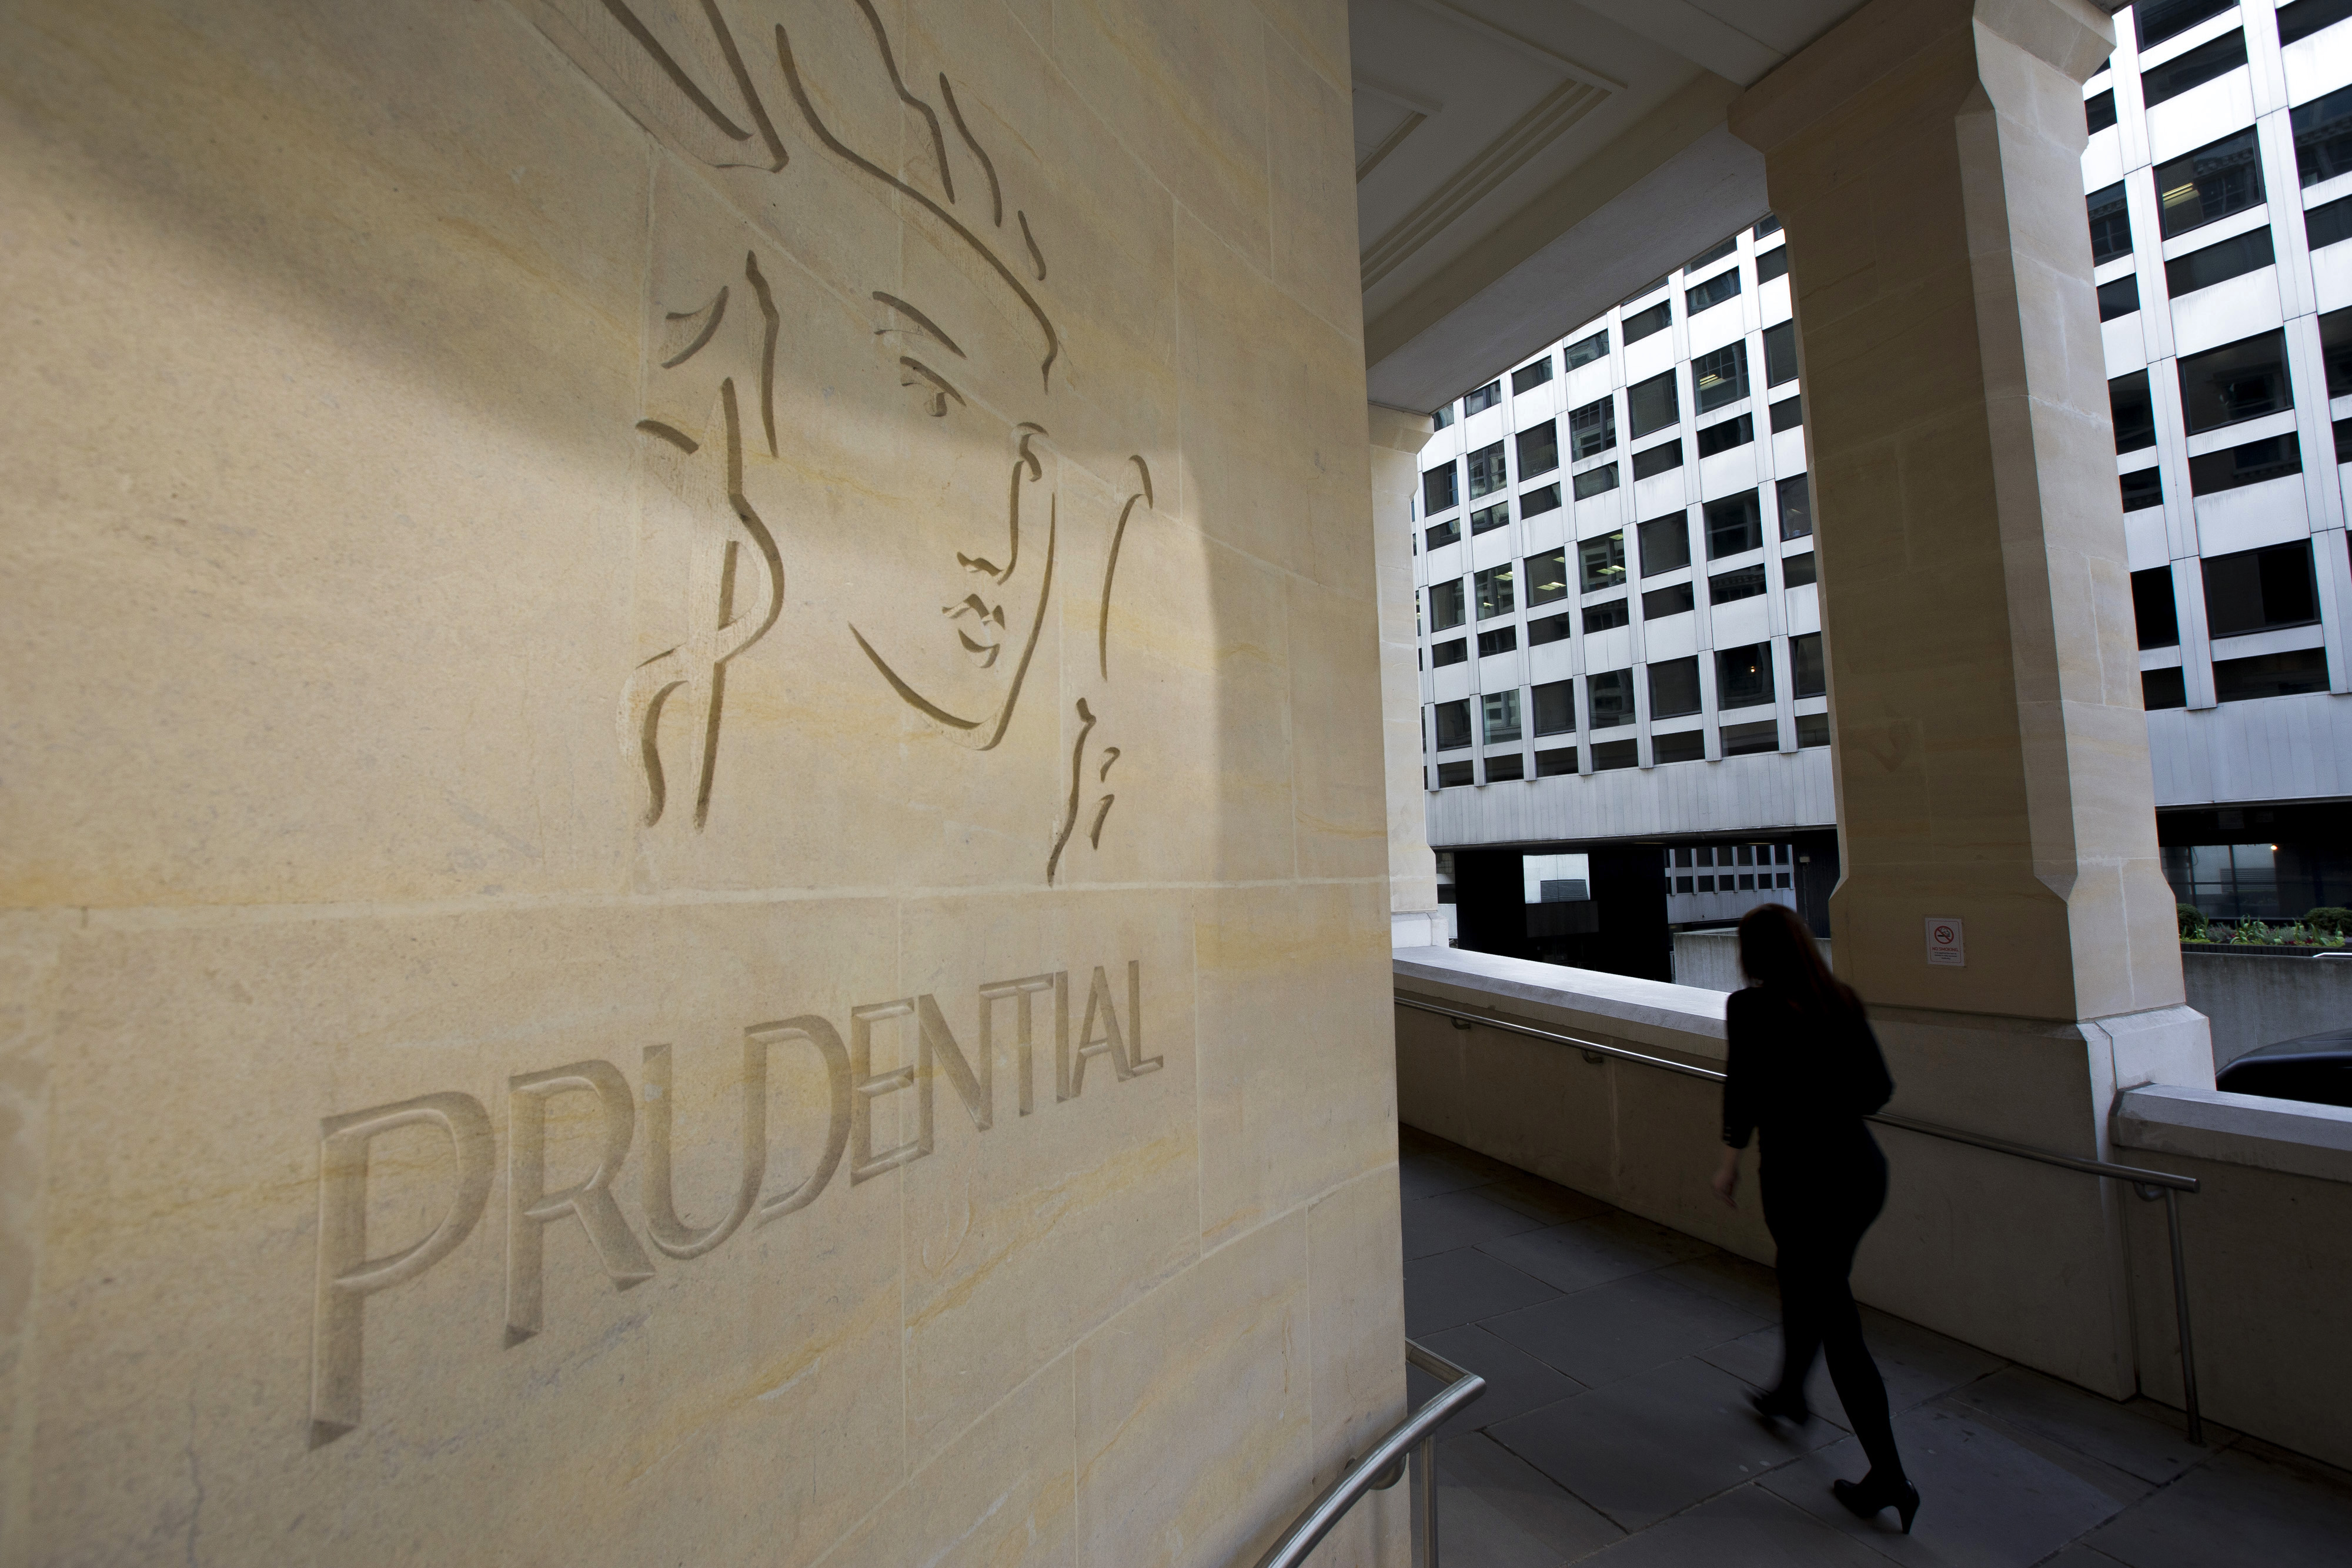 Prudential Plc Headquarters Ahead Of Full Year Results